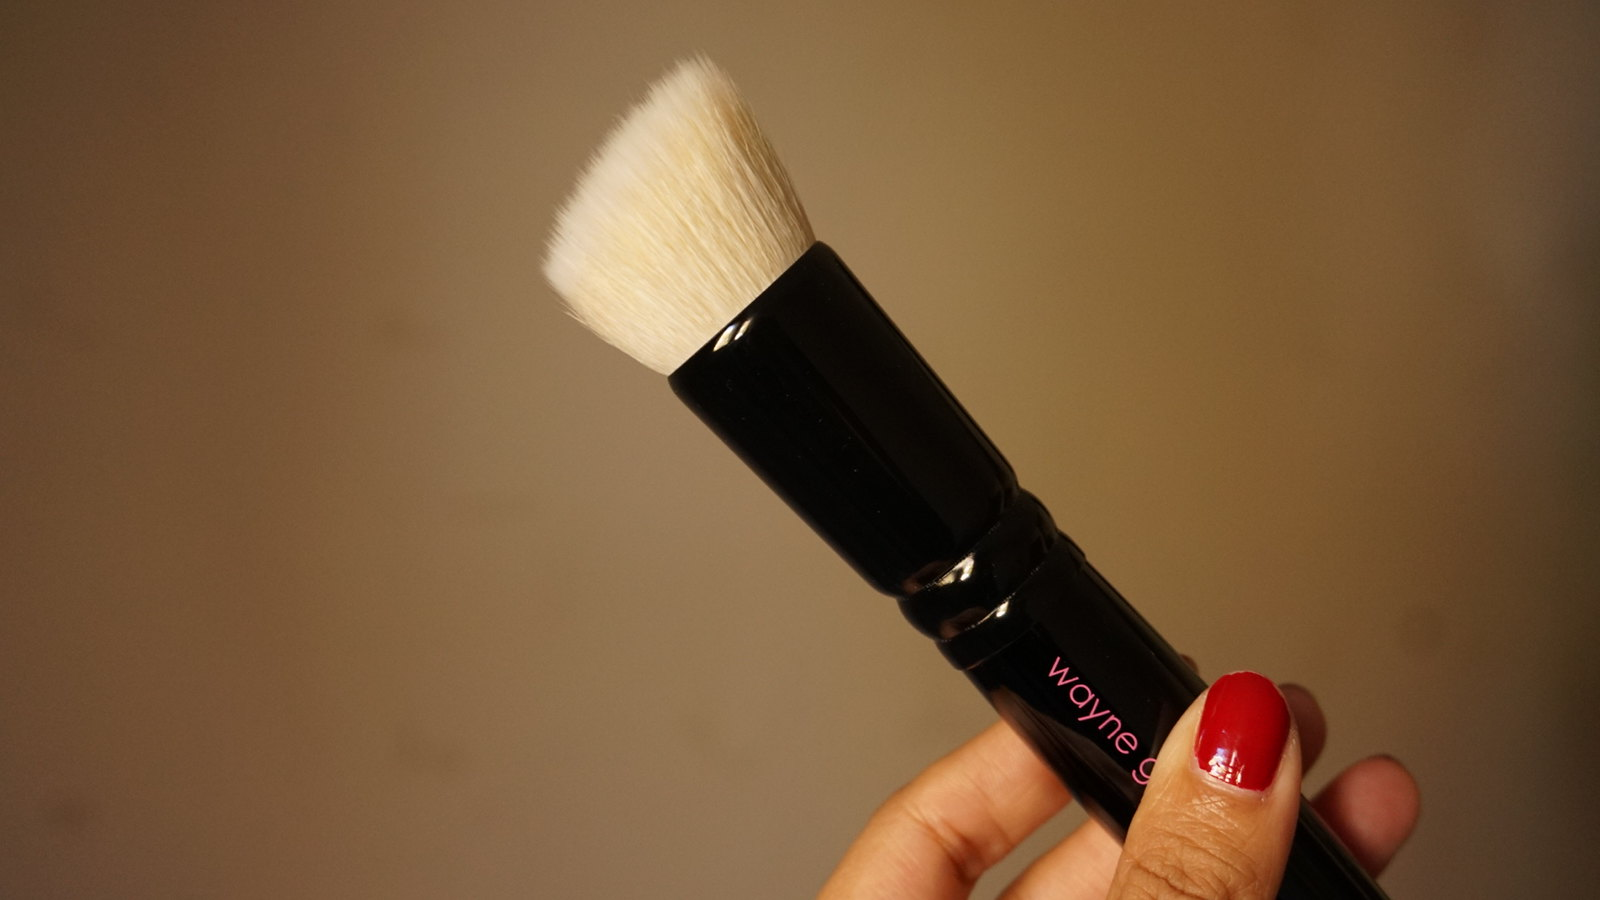 wayne goss brush 01 review girlandvanity.com